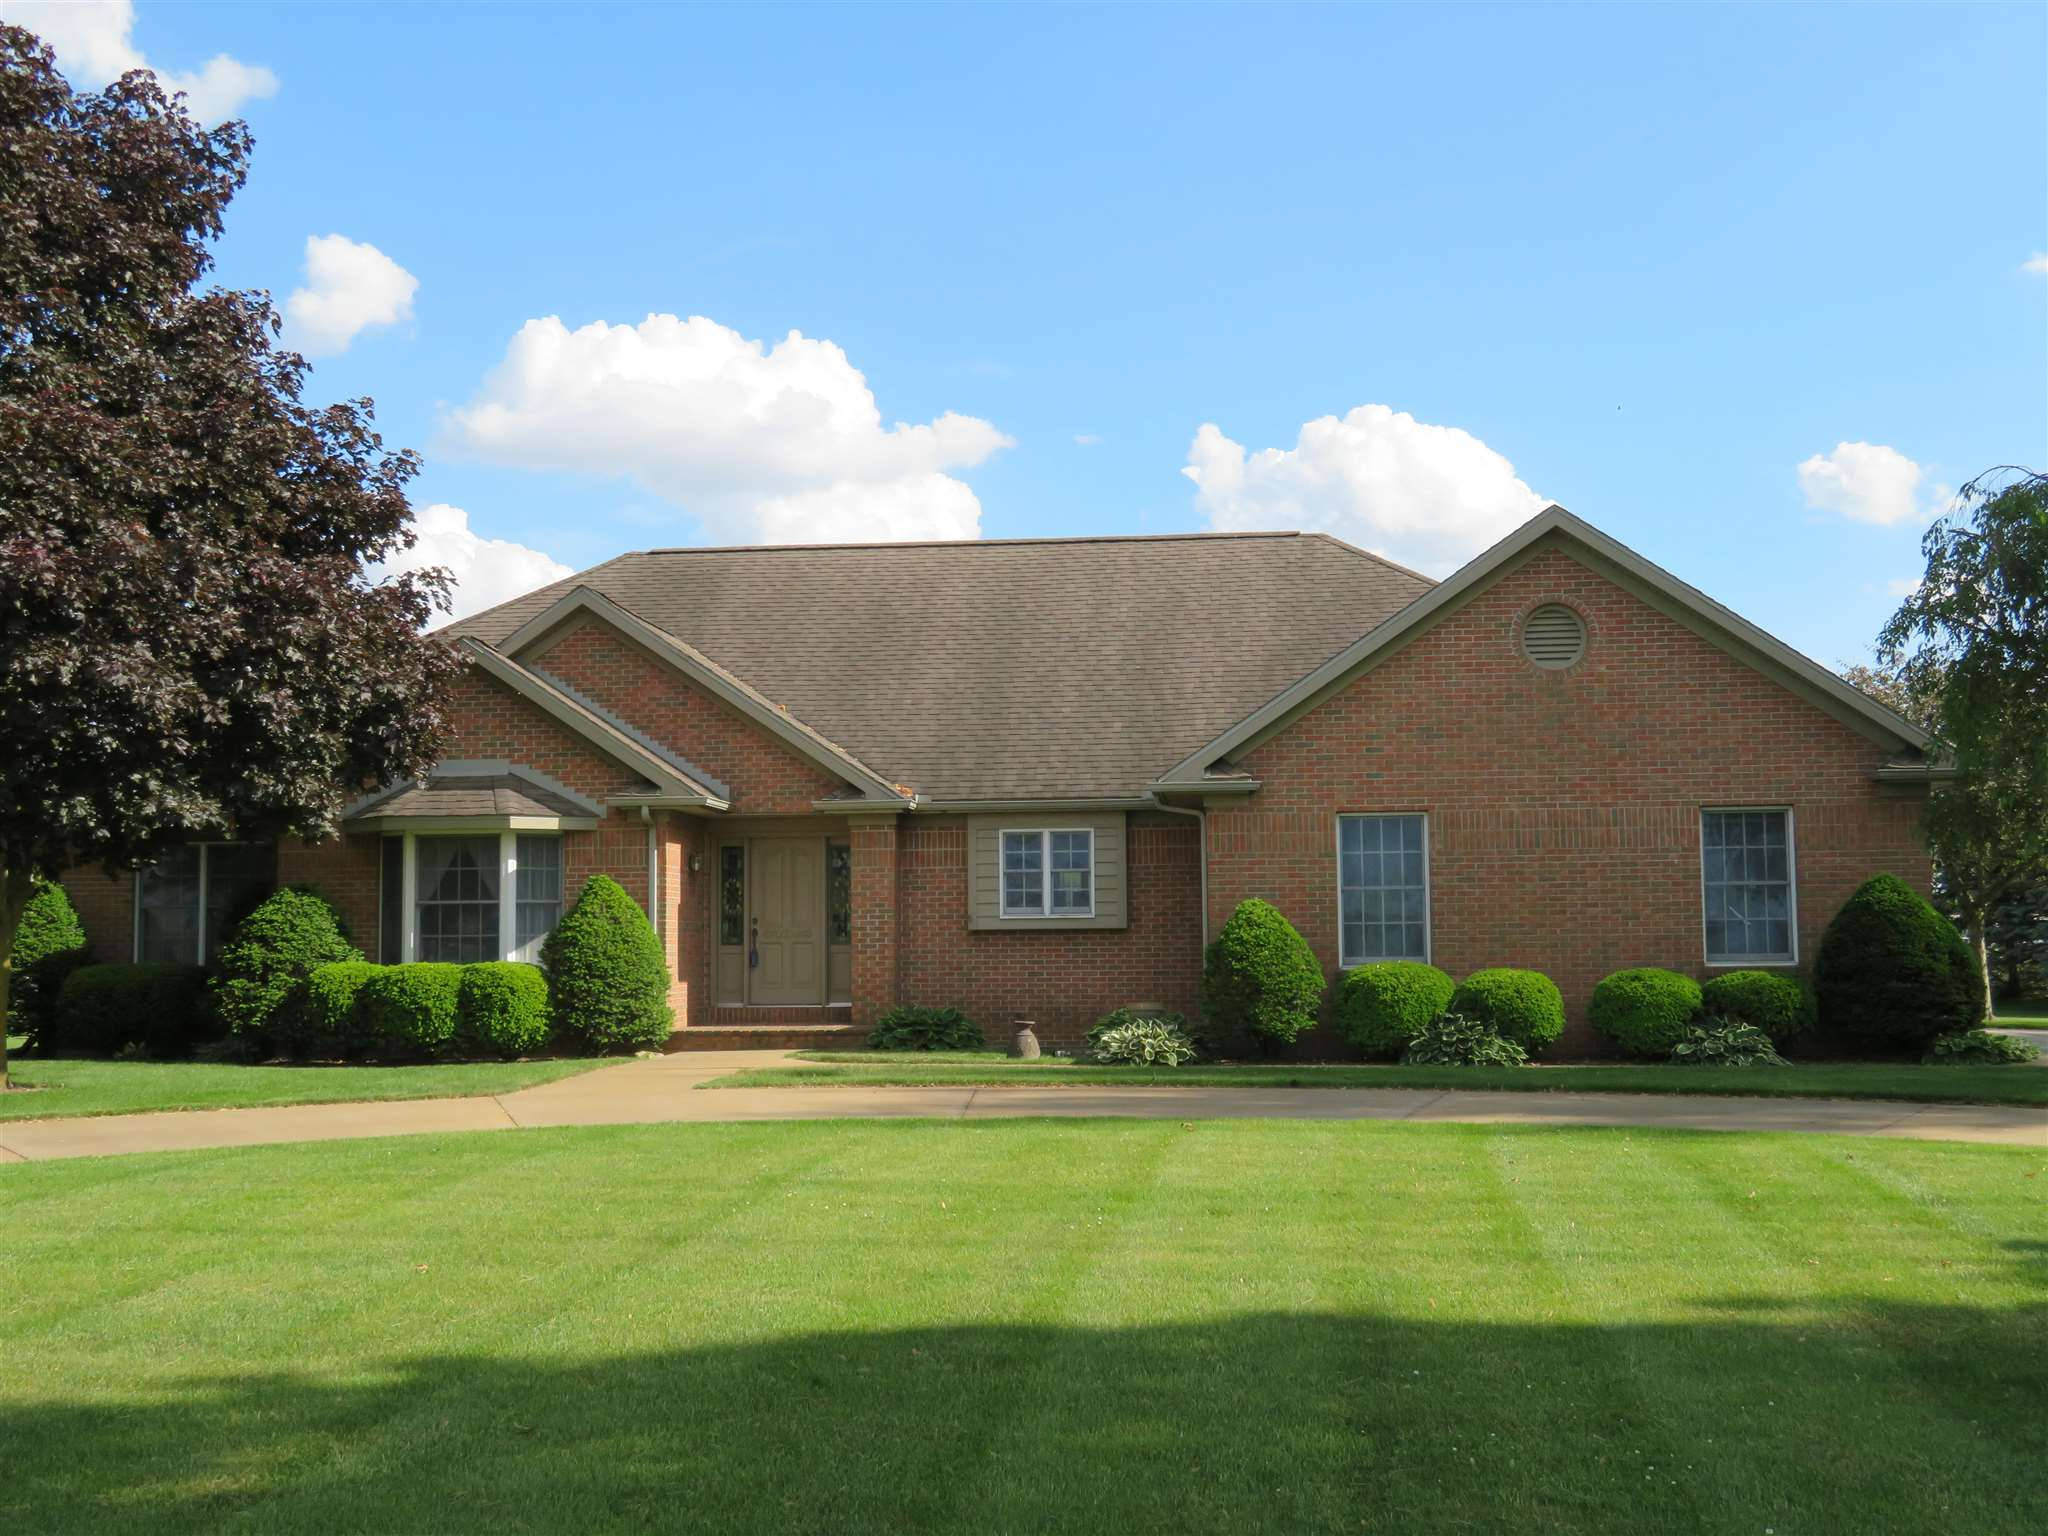 19238 County Road 142, New Paris, IN 46553